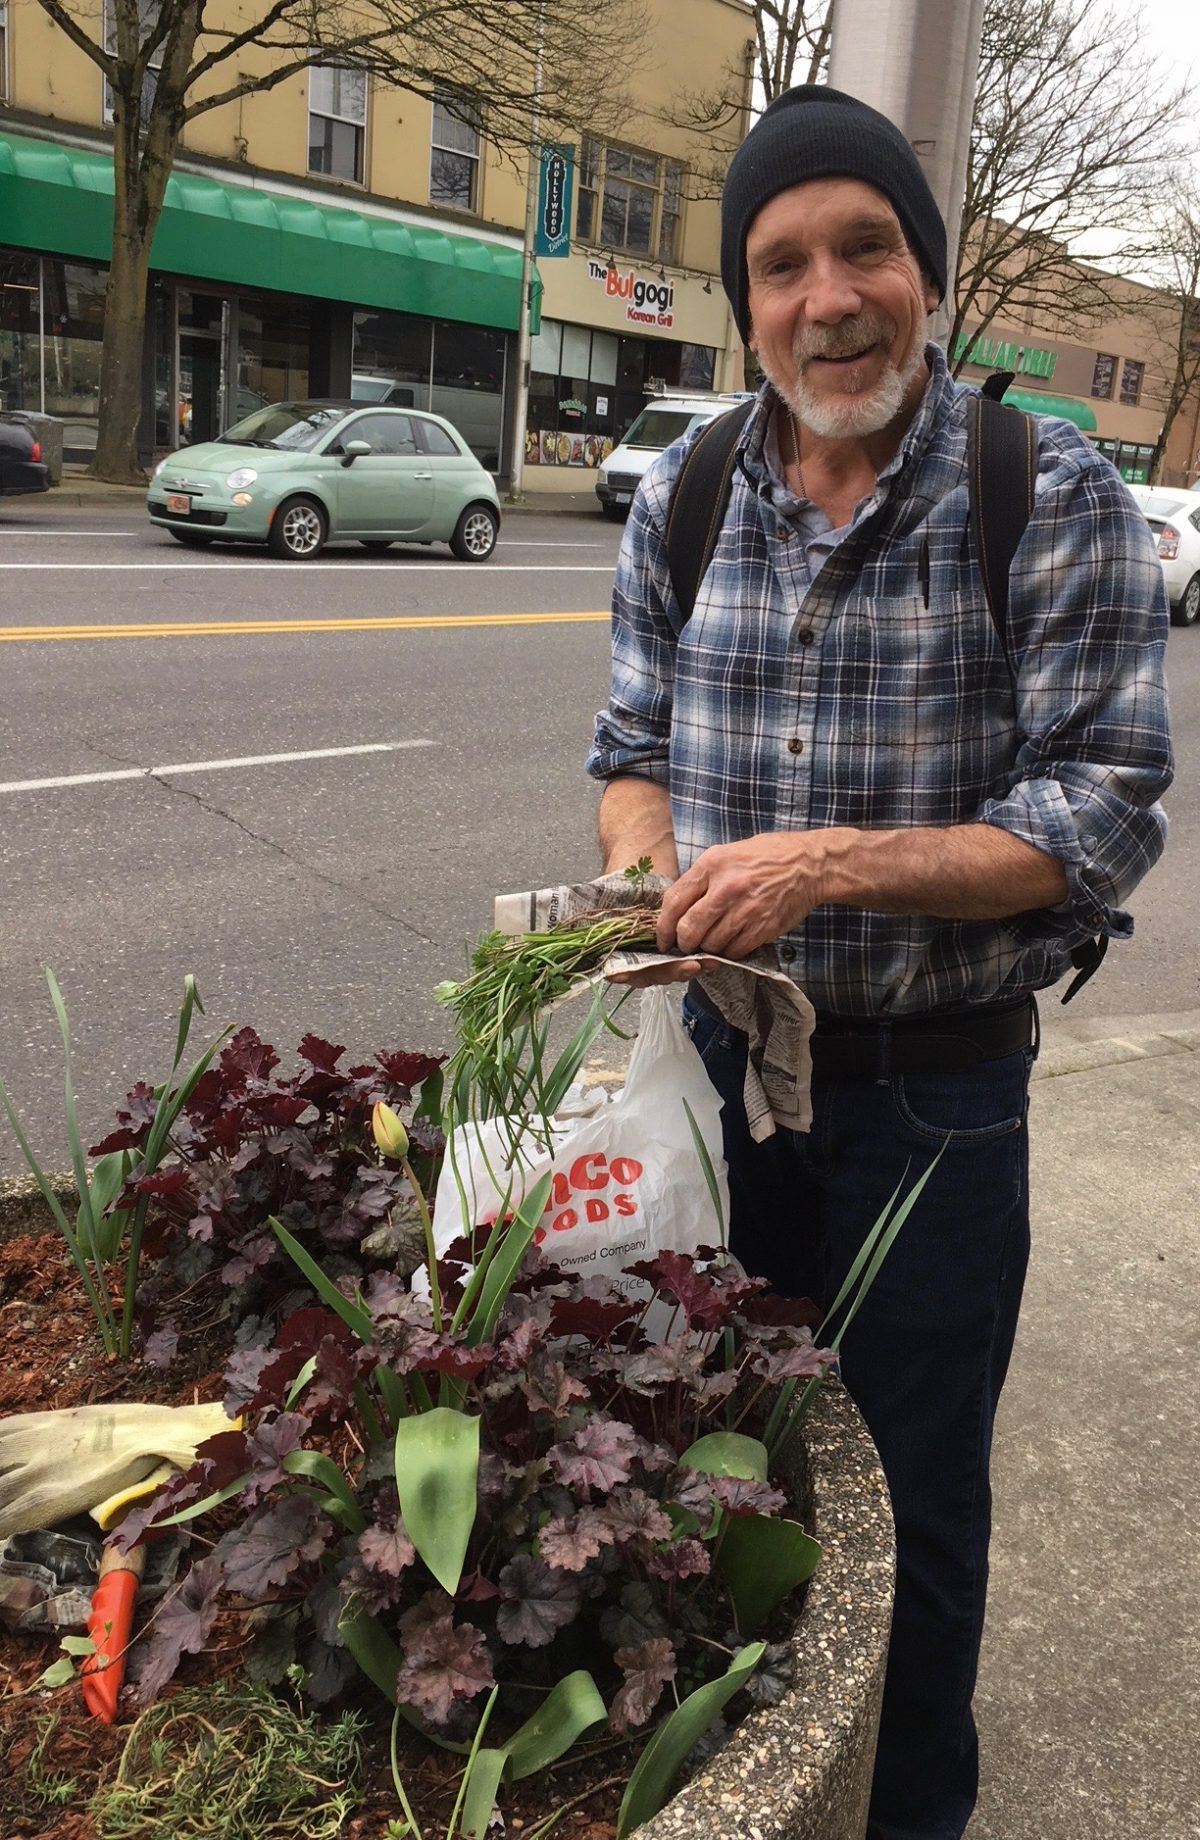 Flowers – Gift to Community